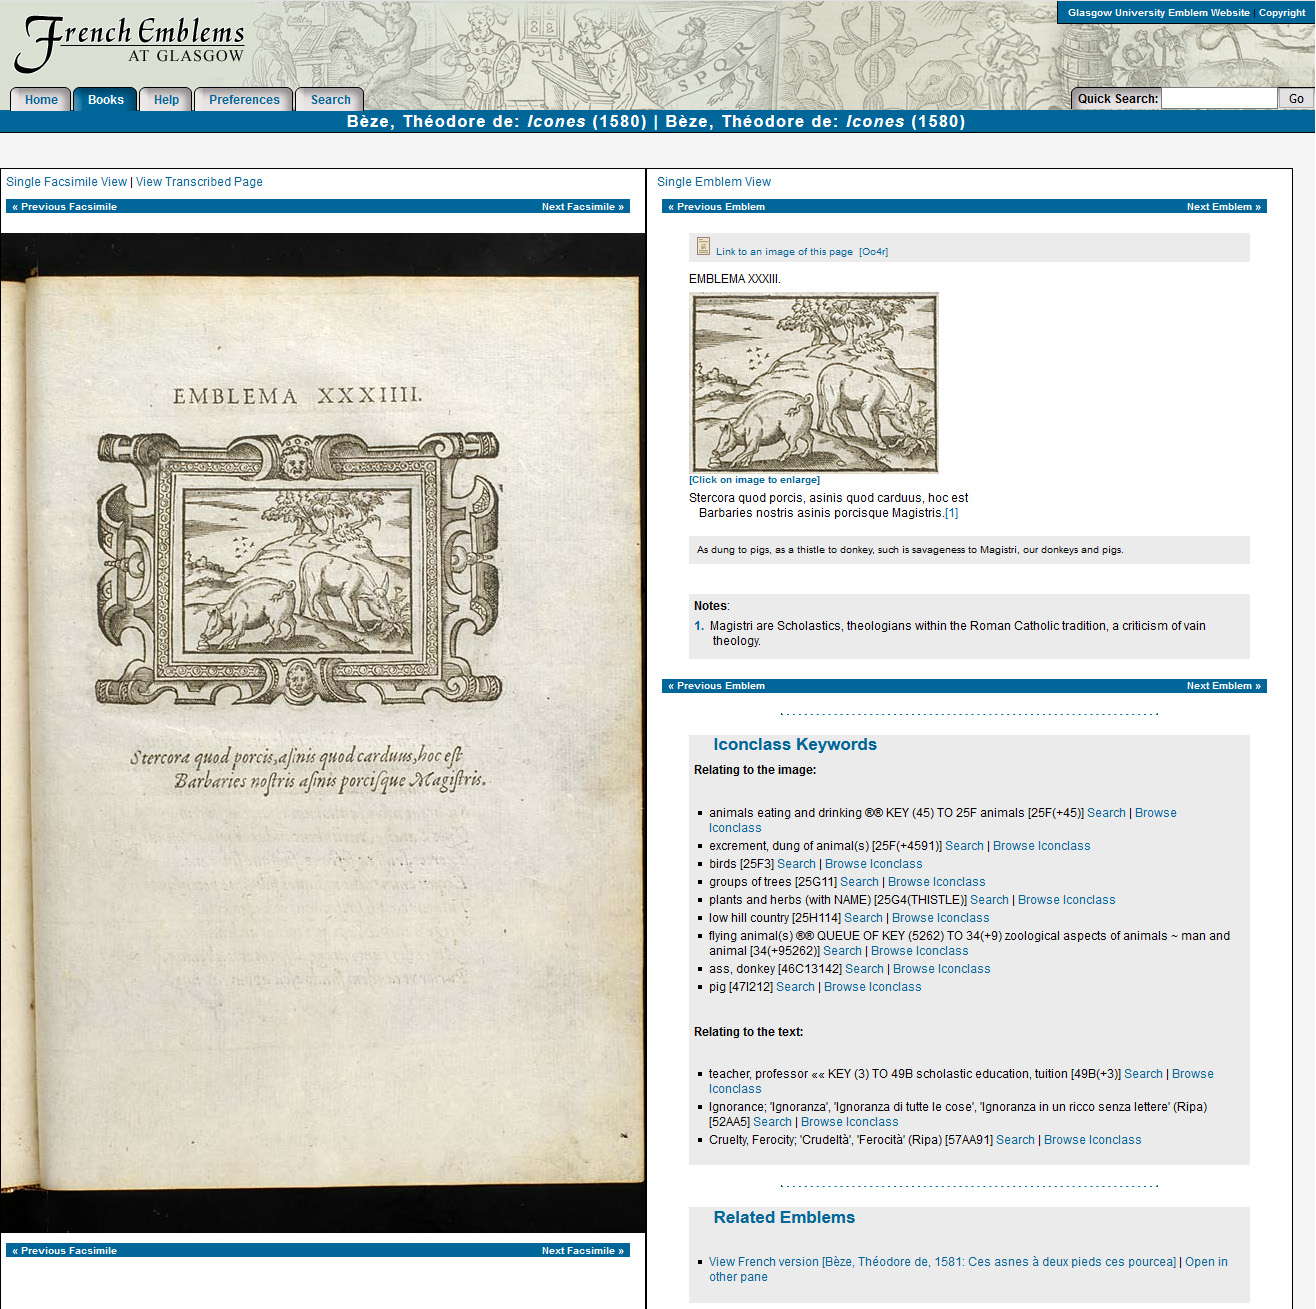 An emblem page, showing the digitised image on the left and transcribed text on the right